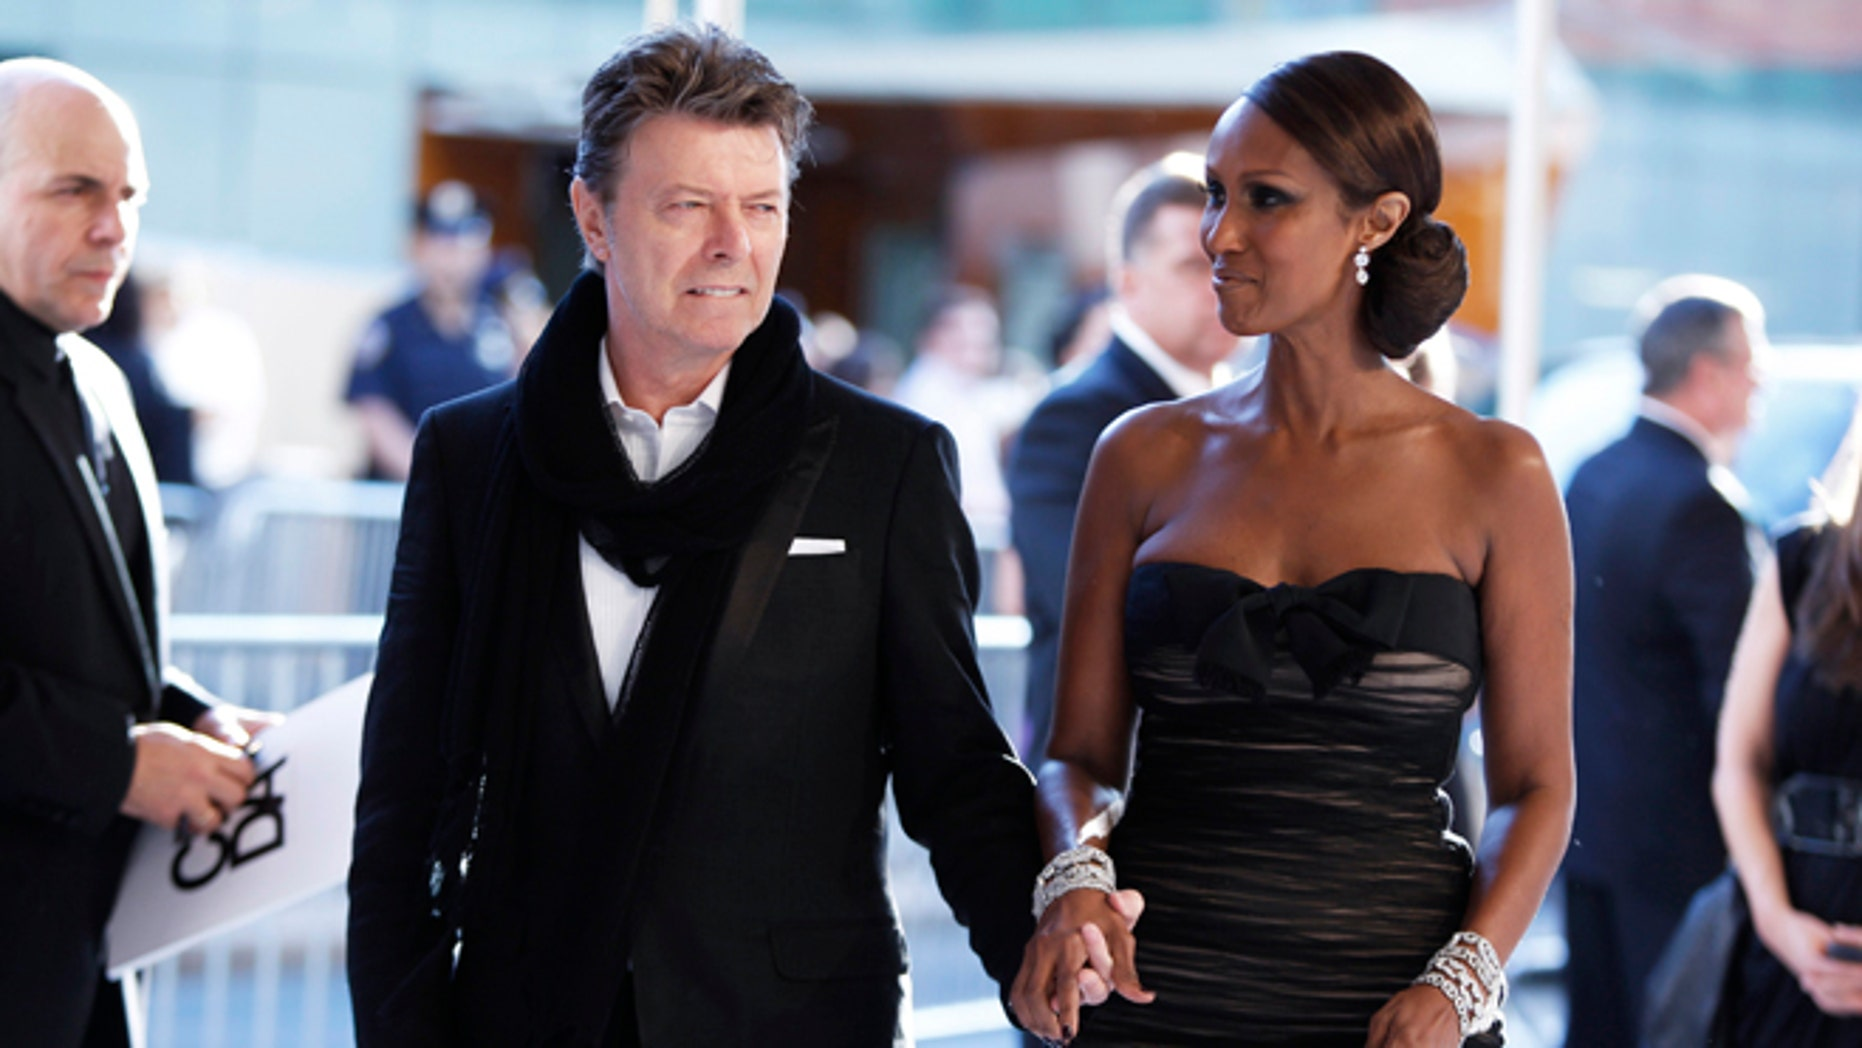 June 7, 2010. Singer David Bowie arrives with his wife Iman to attend the Council of Fashion Designers of America (CFDA) fashion awards in New York.